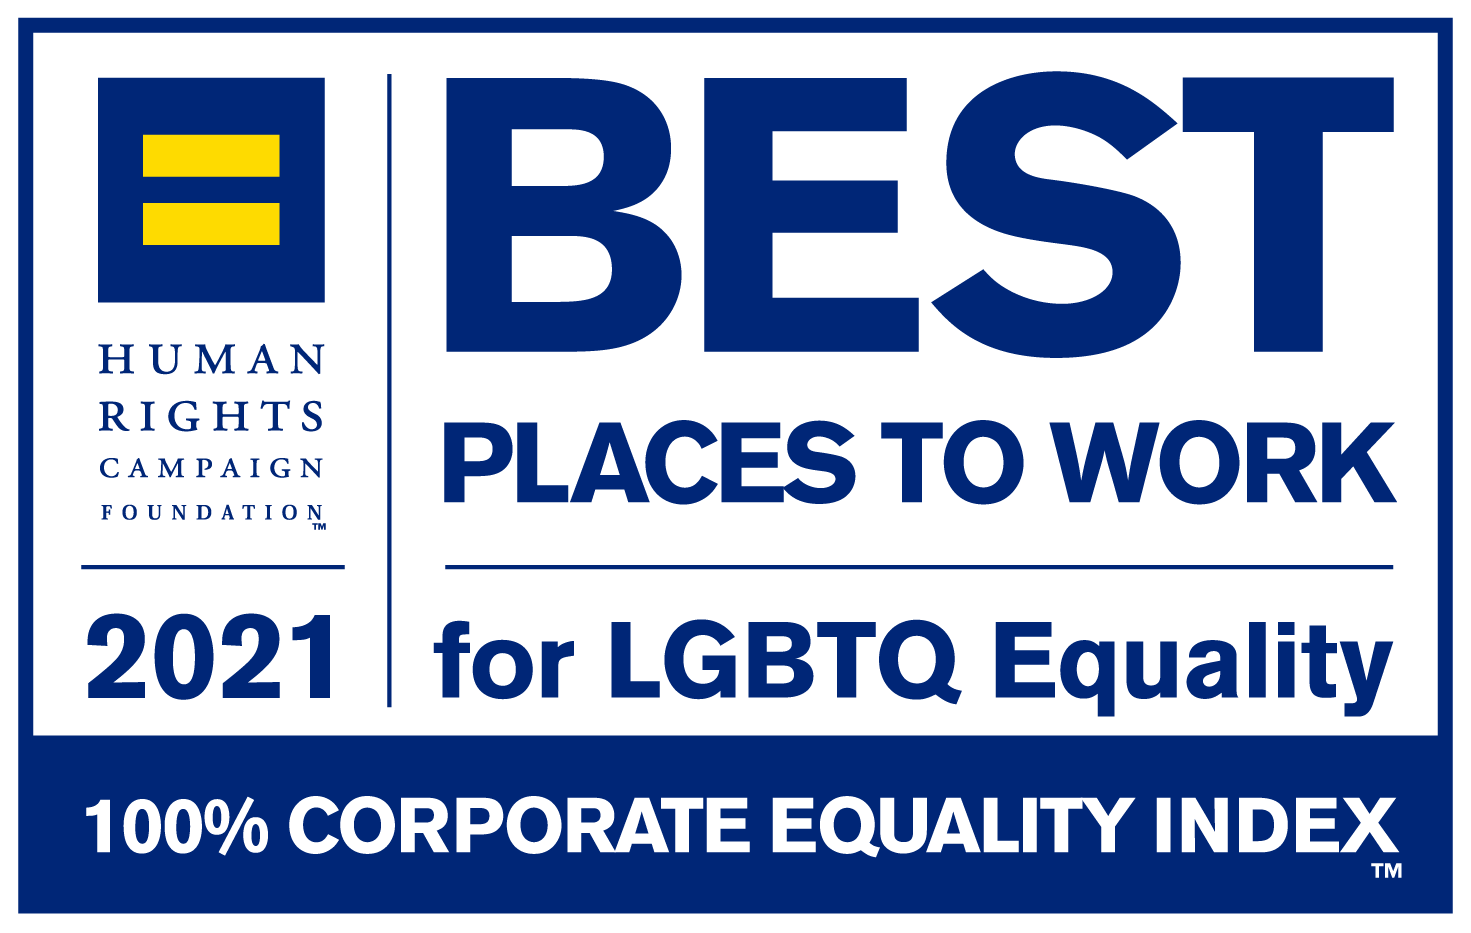 Best places to work for LGBTQ Equality 2021 award from the Human Rights Campaign Foundation.